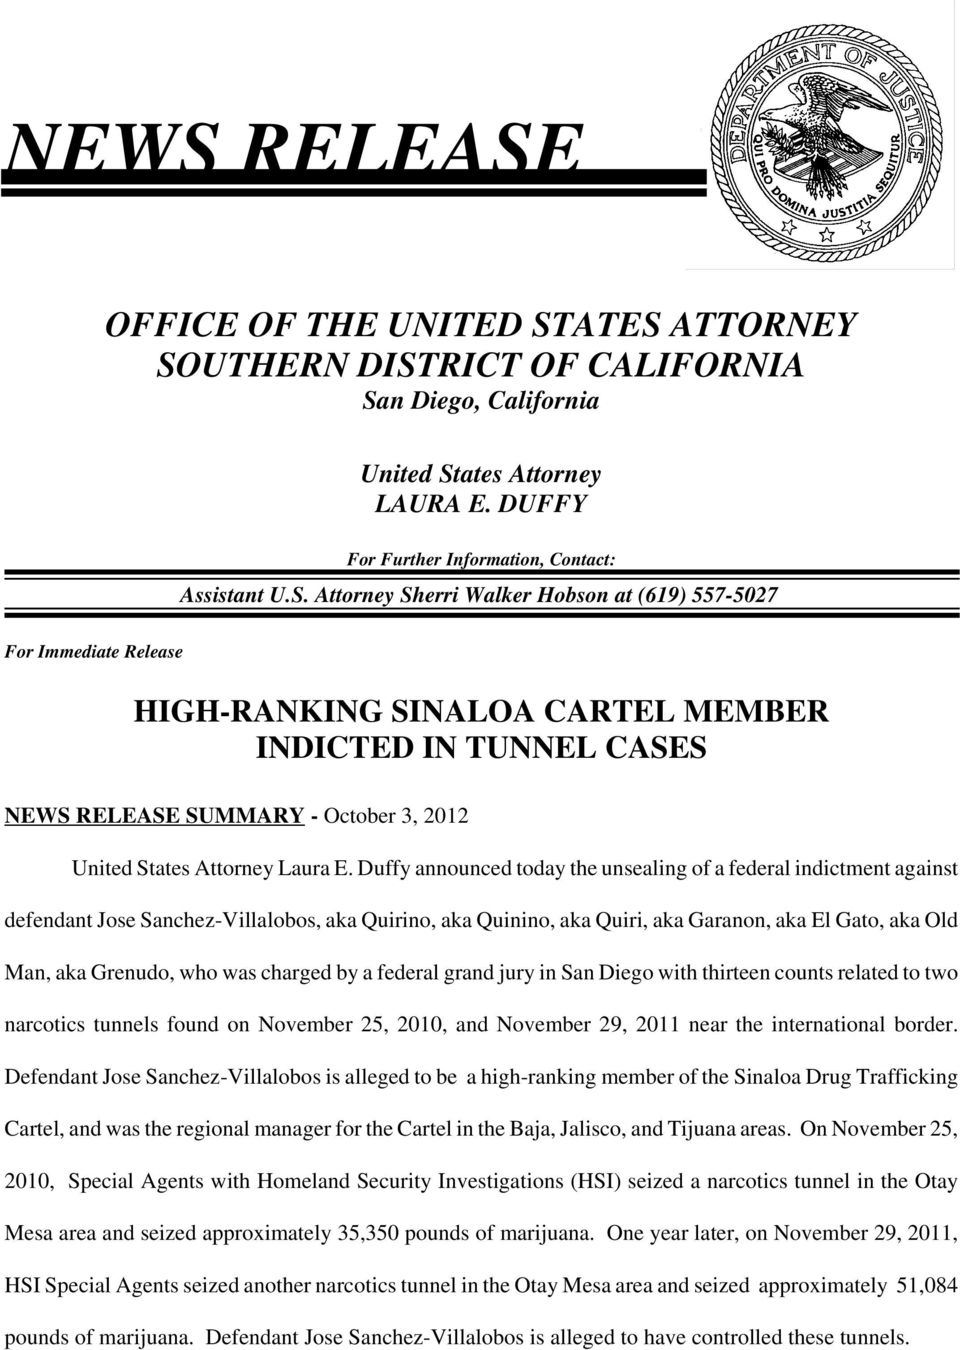 Duffy announced today the unsealing of a federal indictment against defendant Jose Sanchez-Villalobos, aka Quirino, aka Quinino, aka Quiri, aka Garanon, aka El Gato, aka Old Man, aka Grenudo, who was